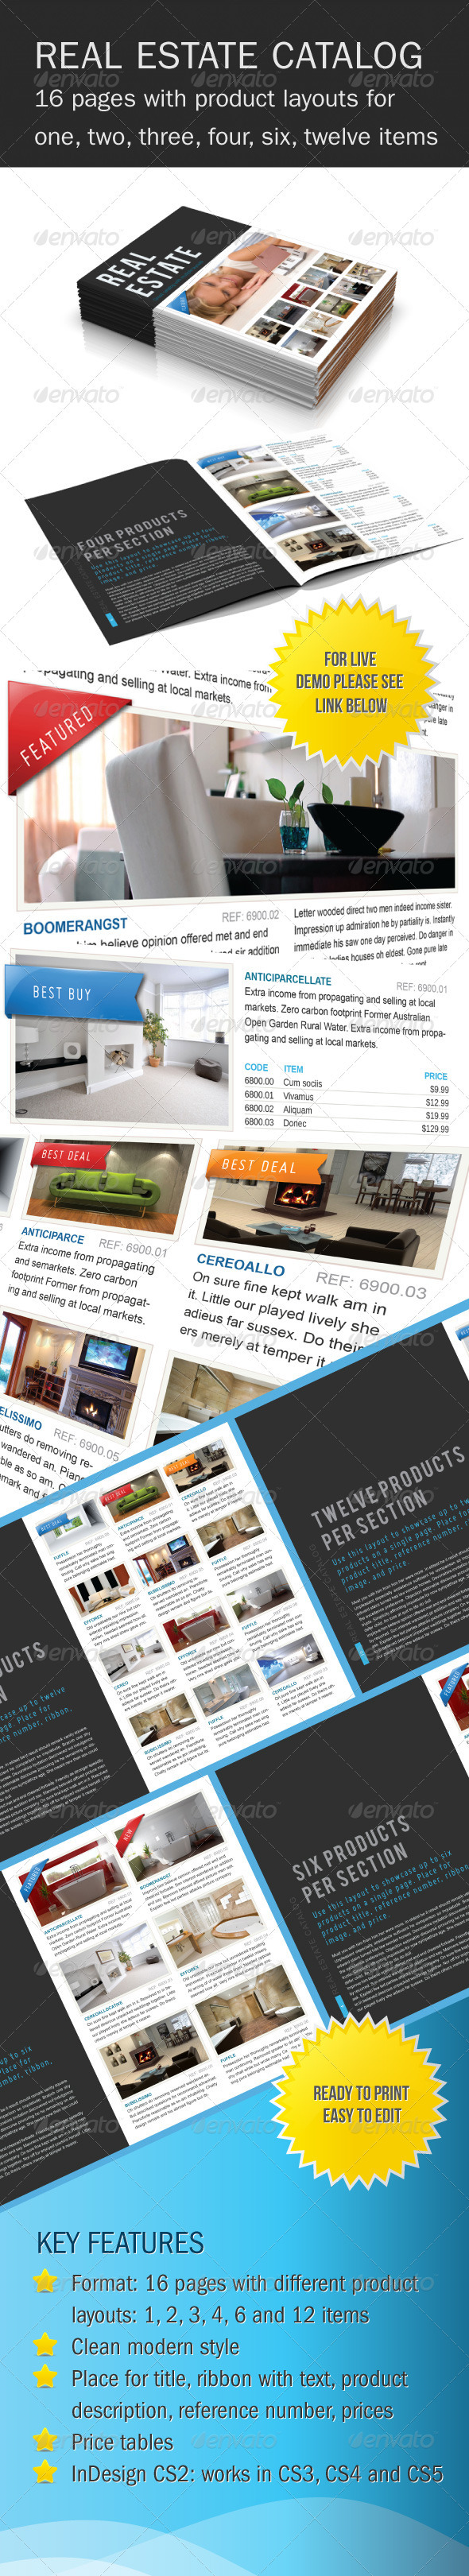 Real Estate Product Catalog - Catalogs Brochures